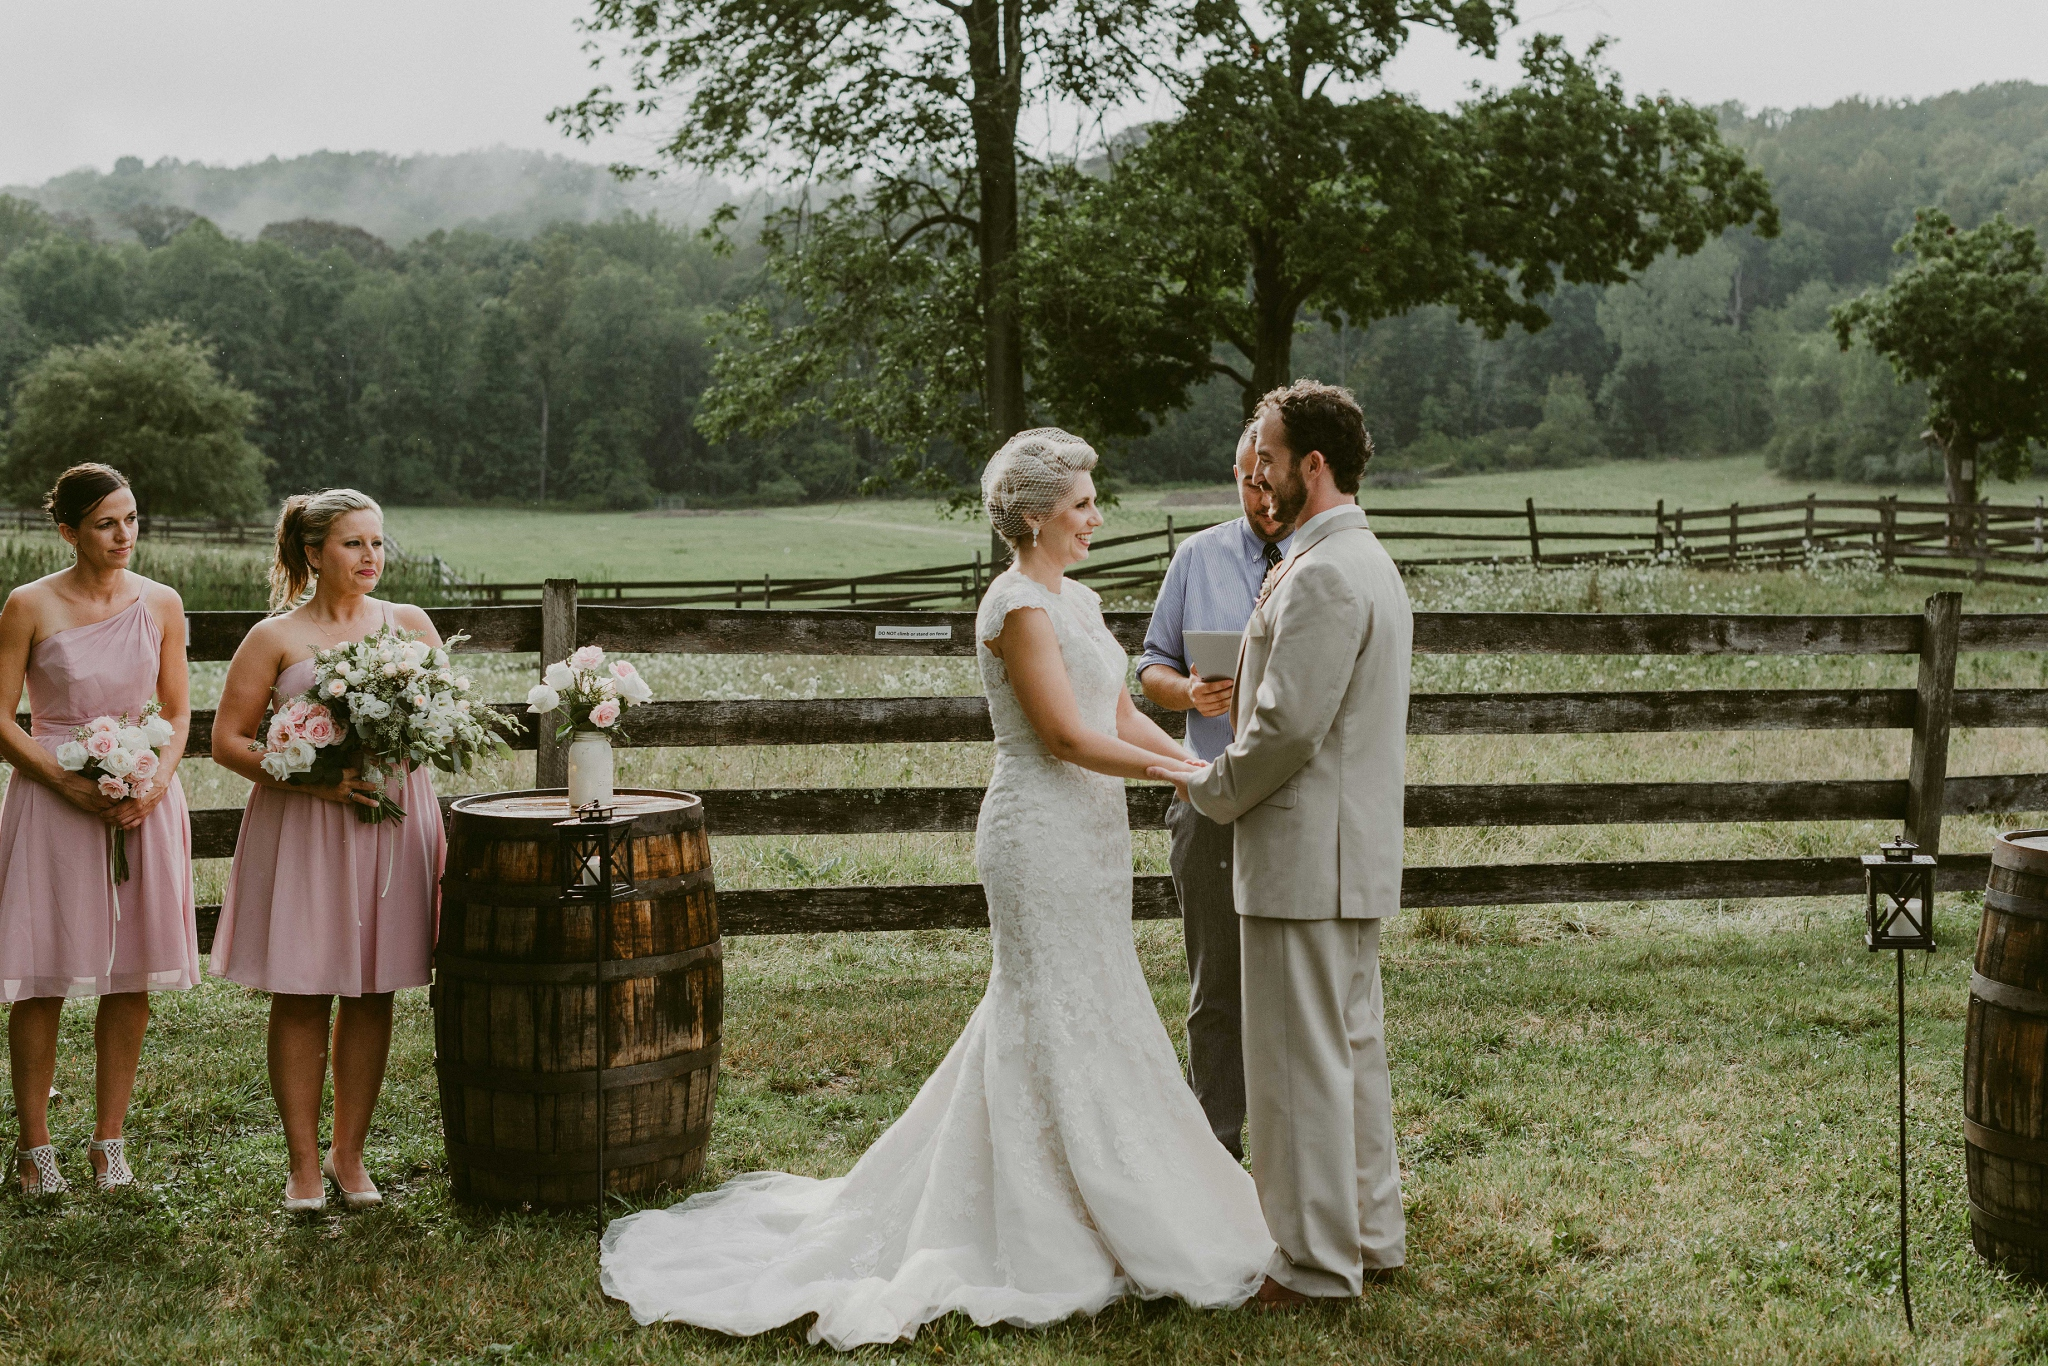 Hines-Hill-Farm-Cuyahoga-Valley-National-Park-Wedding_Emi+Andy_MJPHOTO-494.jpg